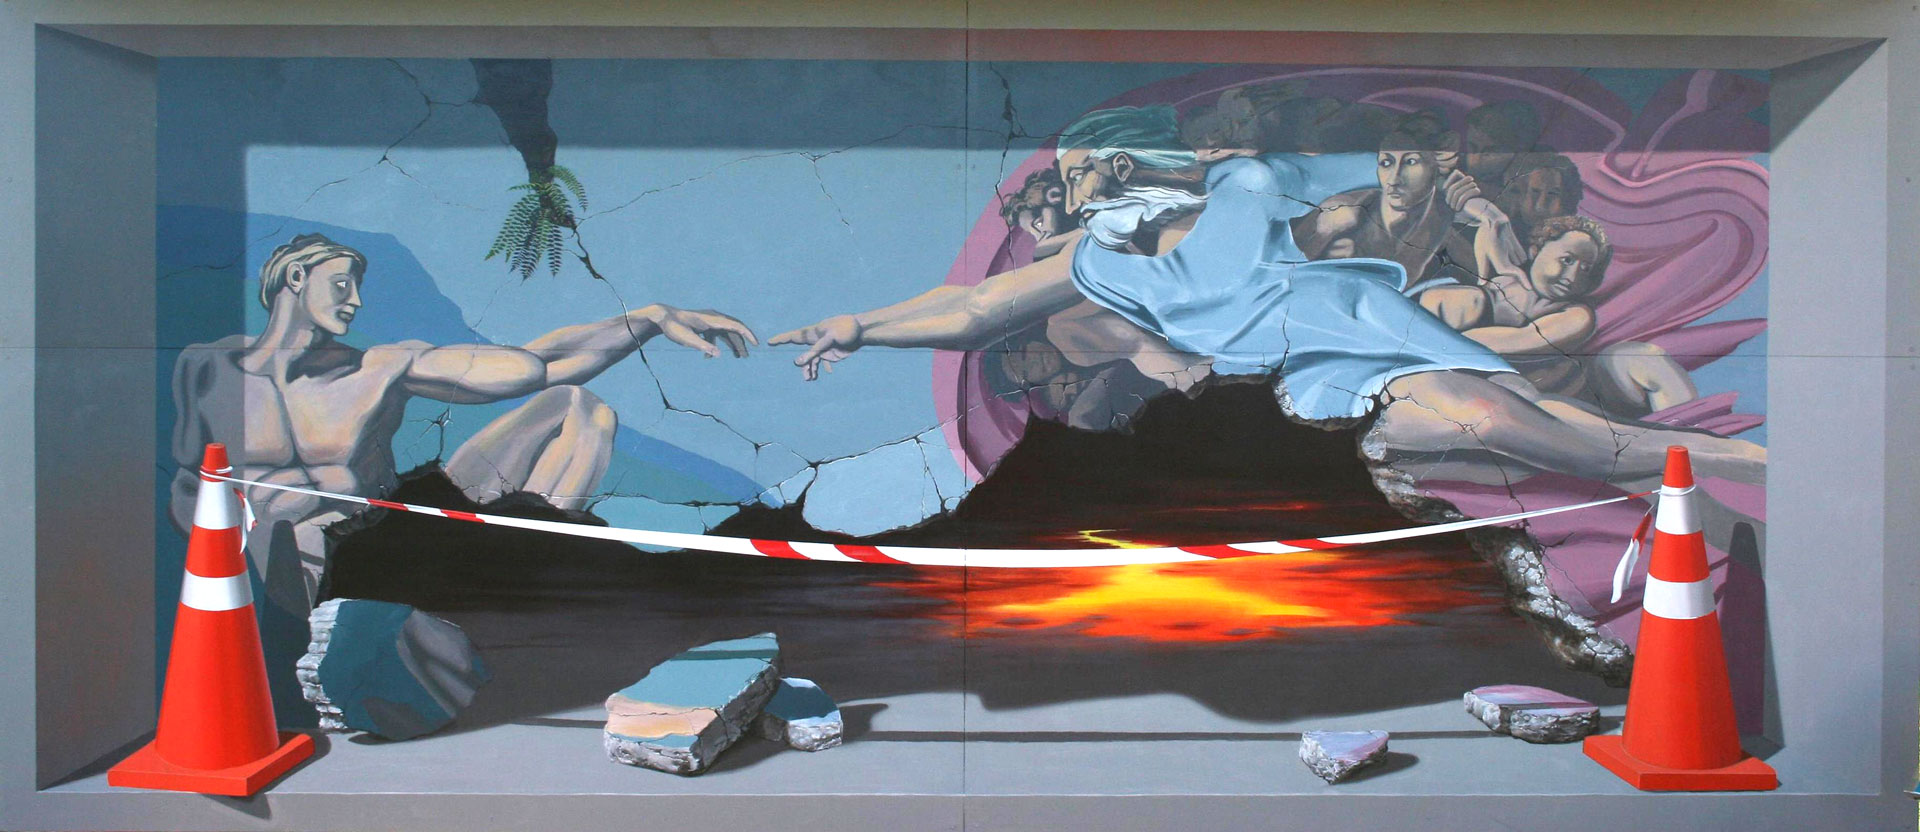 2009-1920x832 Illusion murals